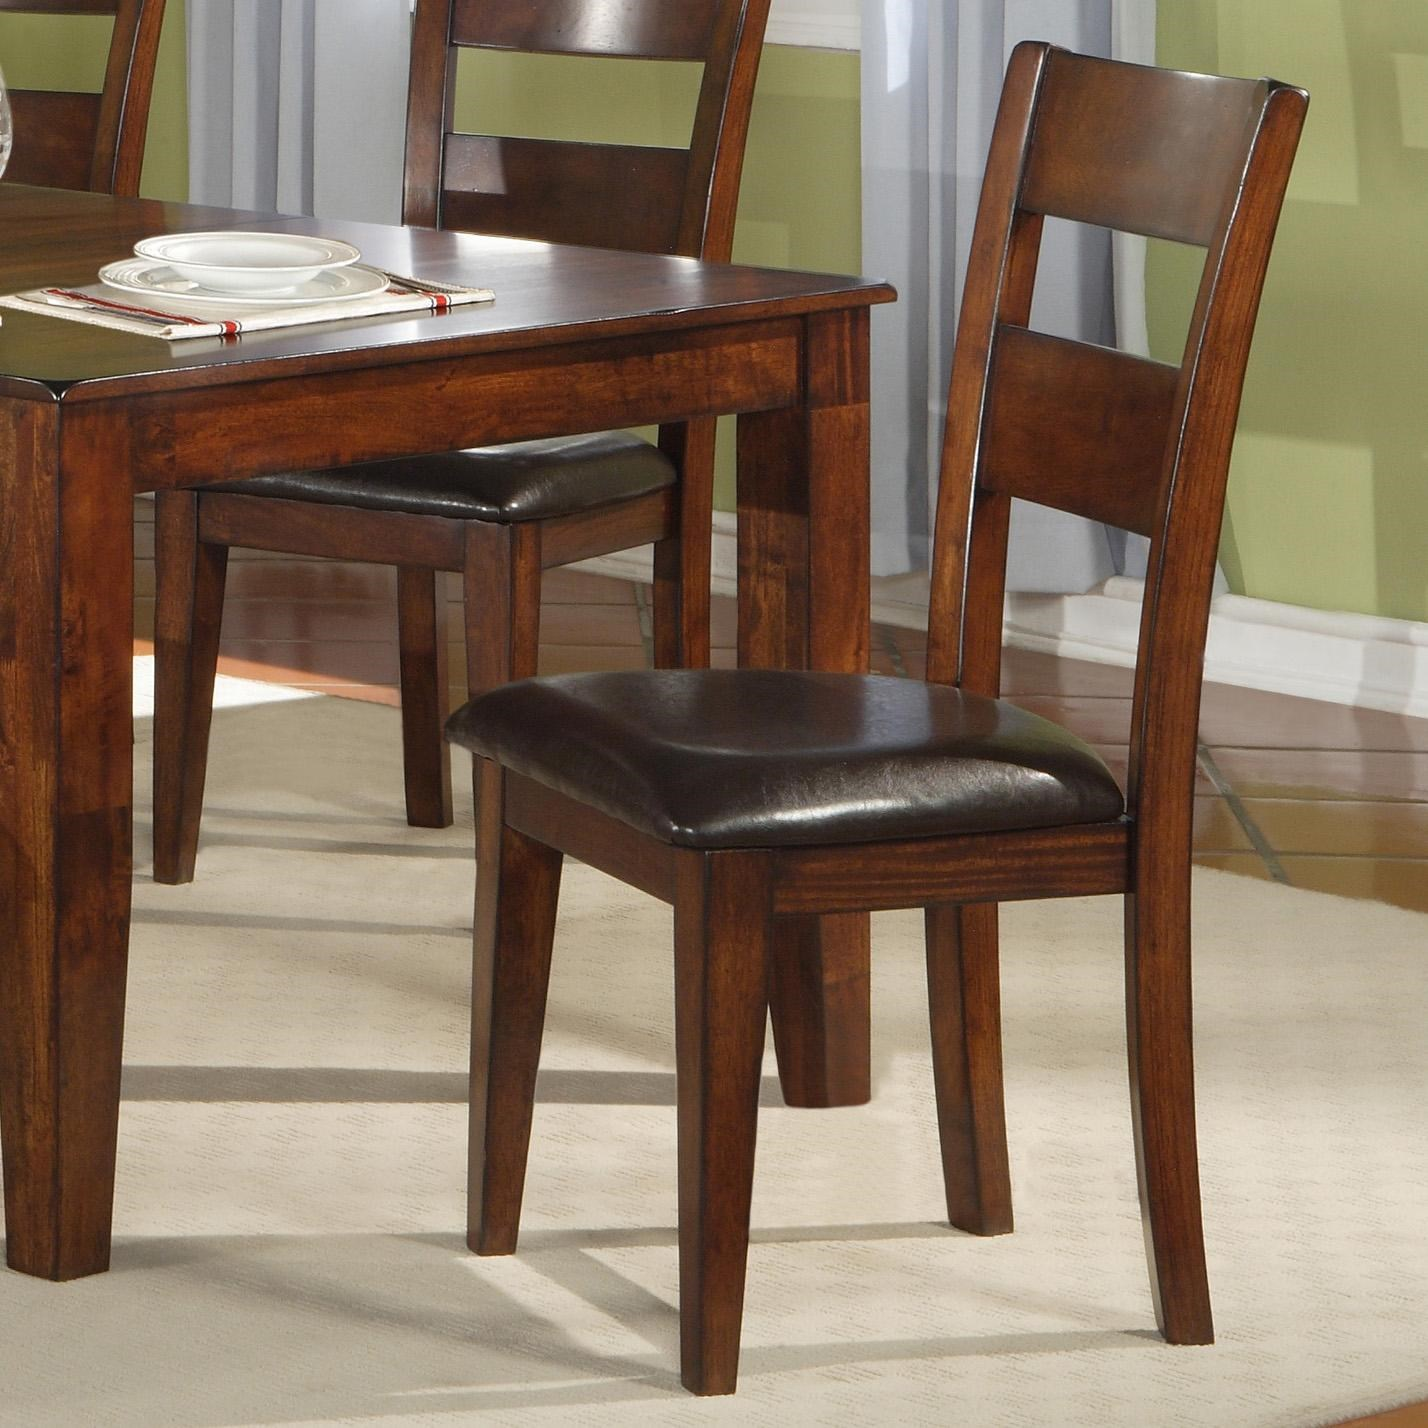 Warehouse M 1279 Dining Room Ladder Back Side Chair with